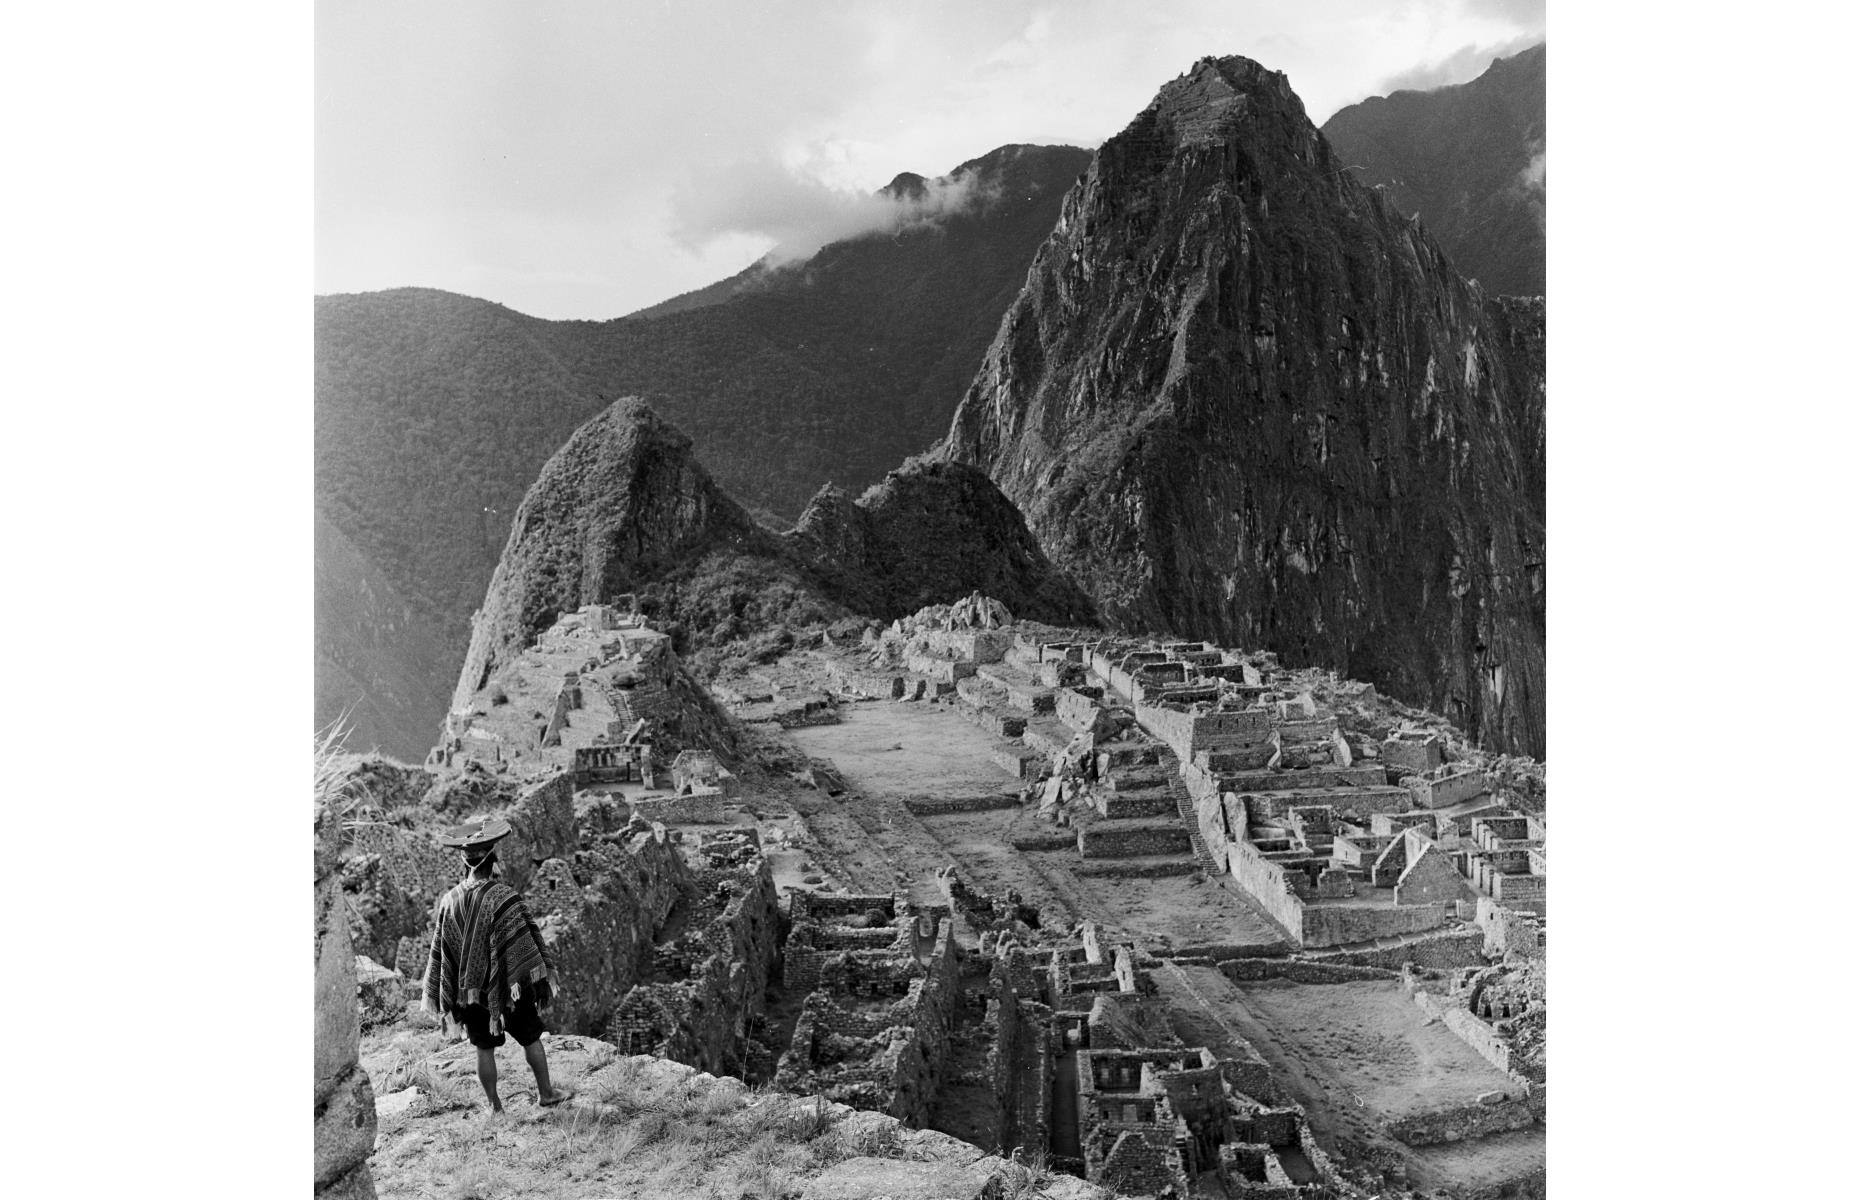 Slide 38 of 51: A well-preserved citadel dating back to the Inca Empire which ruled over western South America in the 15th and 16th centuries, Machu Picchu is located around 50 miles (80km) northwest of Cuzco, between the peaks of its namesakeand Huayna Picchu. It became well-known to the Western world when American archaeologist Hiram Bingham and his team began digging there in 1911, after which Bingham published a book, The Lost City of the Incas, which led tourists to flock to the Inca Trail. Pictured here in the mid-1950s, a Peruvian Indian man in traditional dress gazes out at the view.